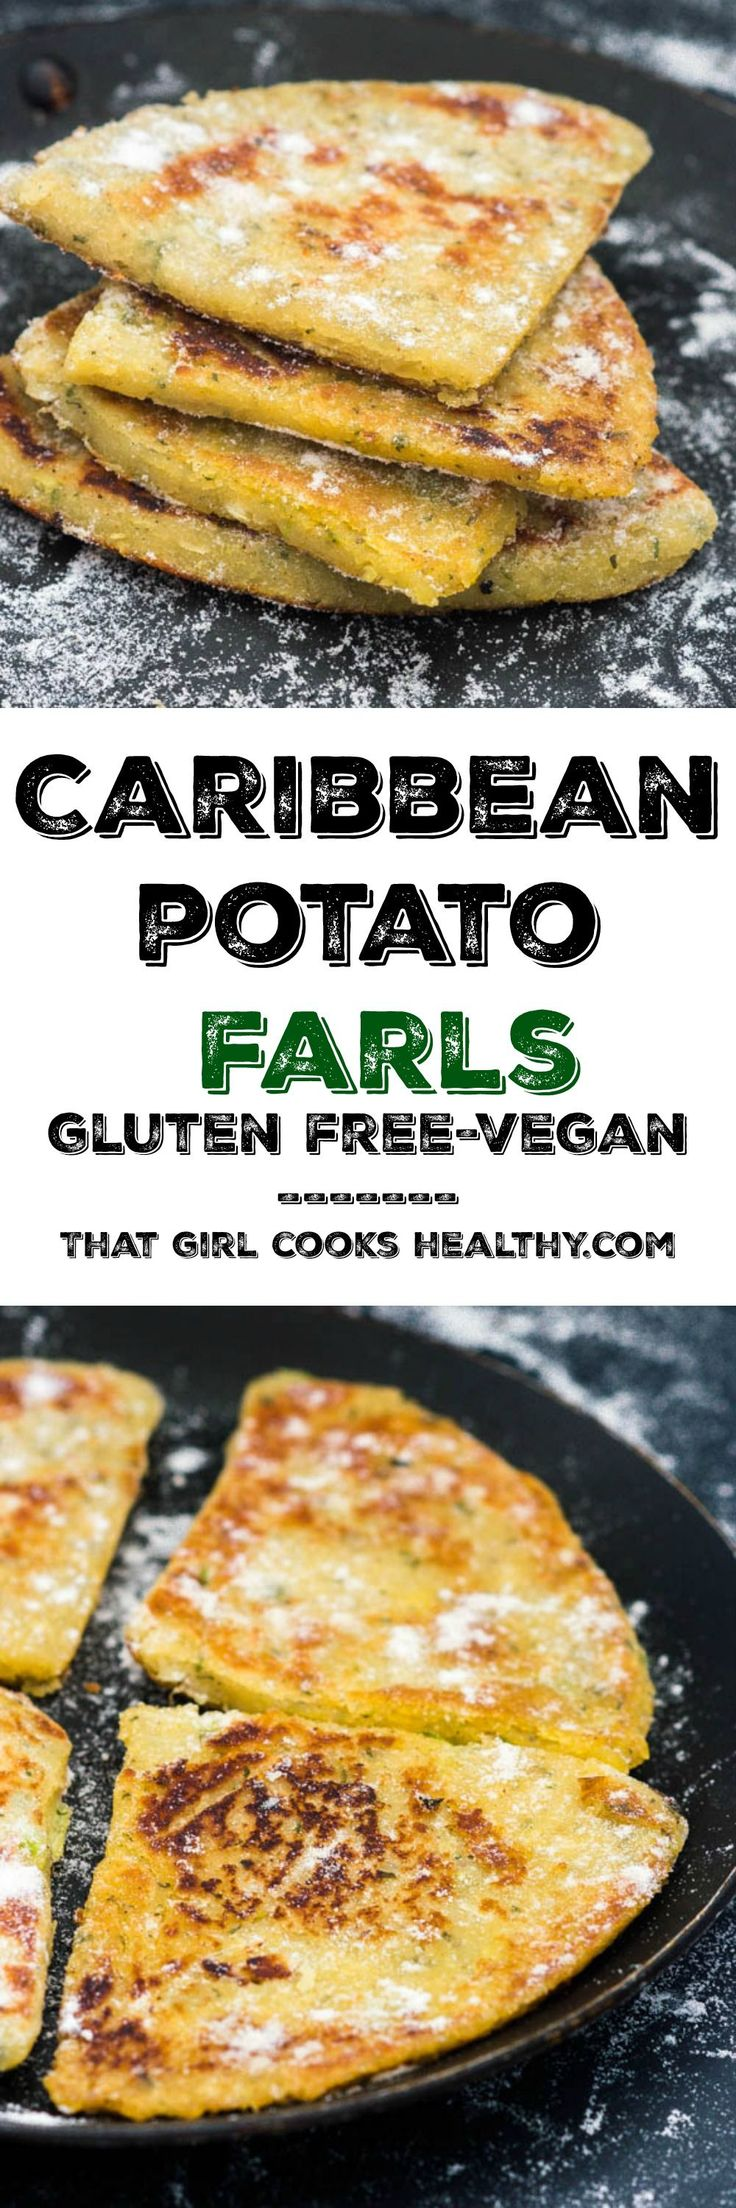 Potato farls recipe - where the Caribbean meets Ireland, a true culinary affair of sweet potatoes, generously seasoned with common island ingredient and mashed into potato cakes. I'm so excited to share this recipe with you all because it's another fusion recipe. In case you aren't aware, I d